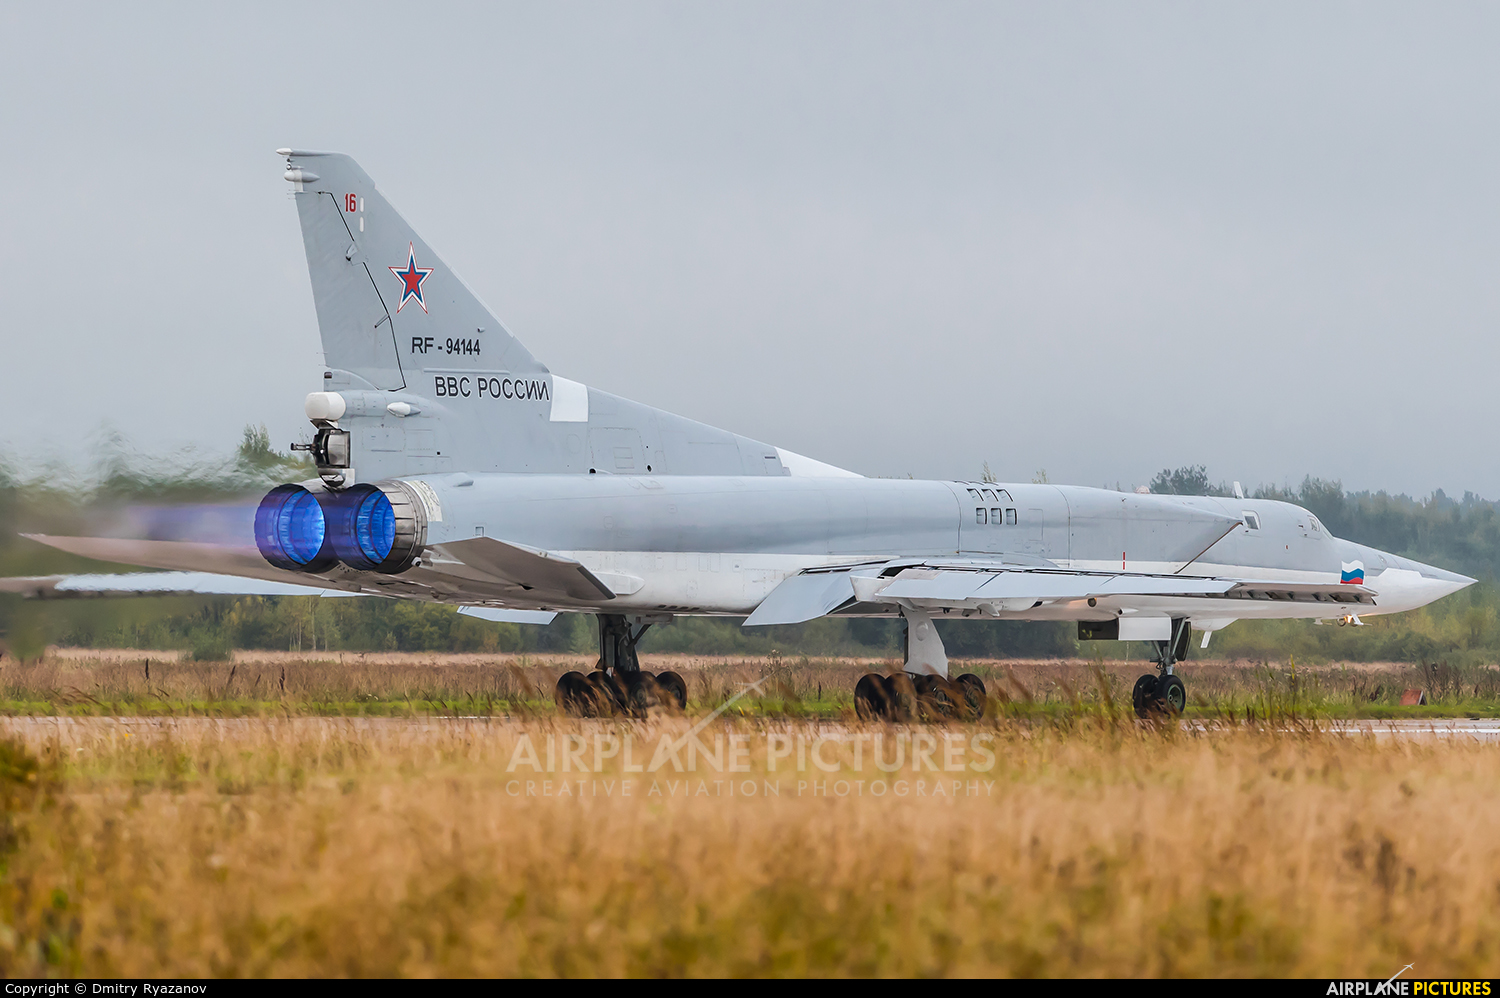 Russia - Air Force RF-94144 aircraft at Undisclosed Location